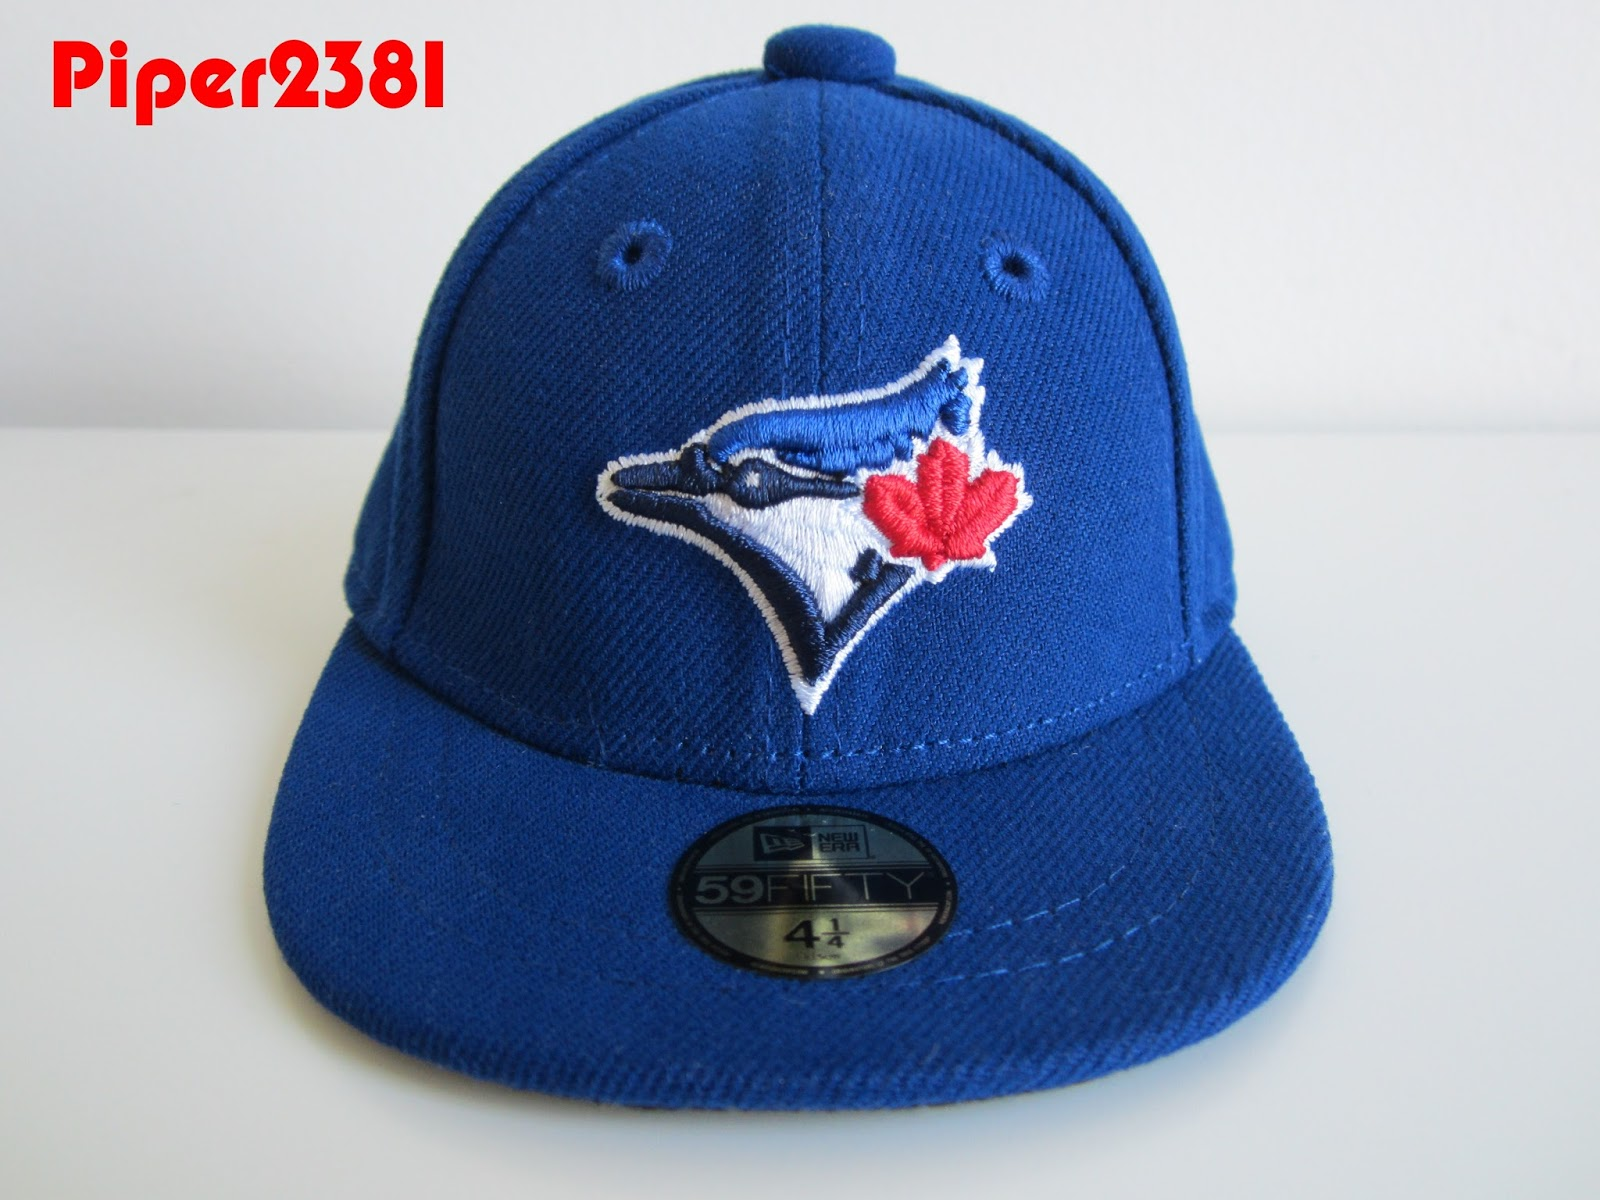 22e8caa5928 ... Blue Jays Mini Cap. A few weeks ago I was on twitter when I noticed  that New Era had sent out a tweet asking people to follow New Era Canada on  twitter.